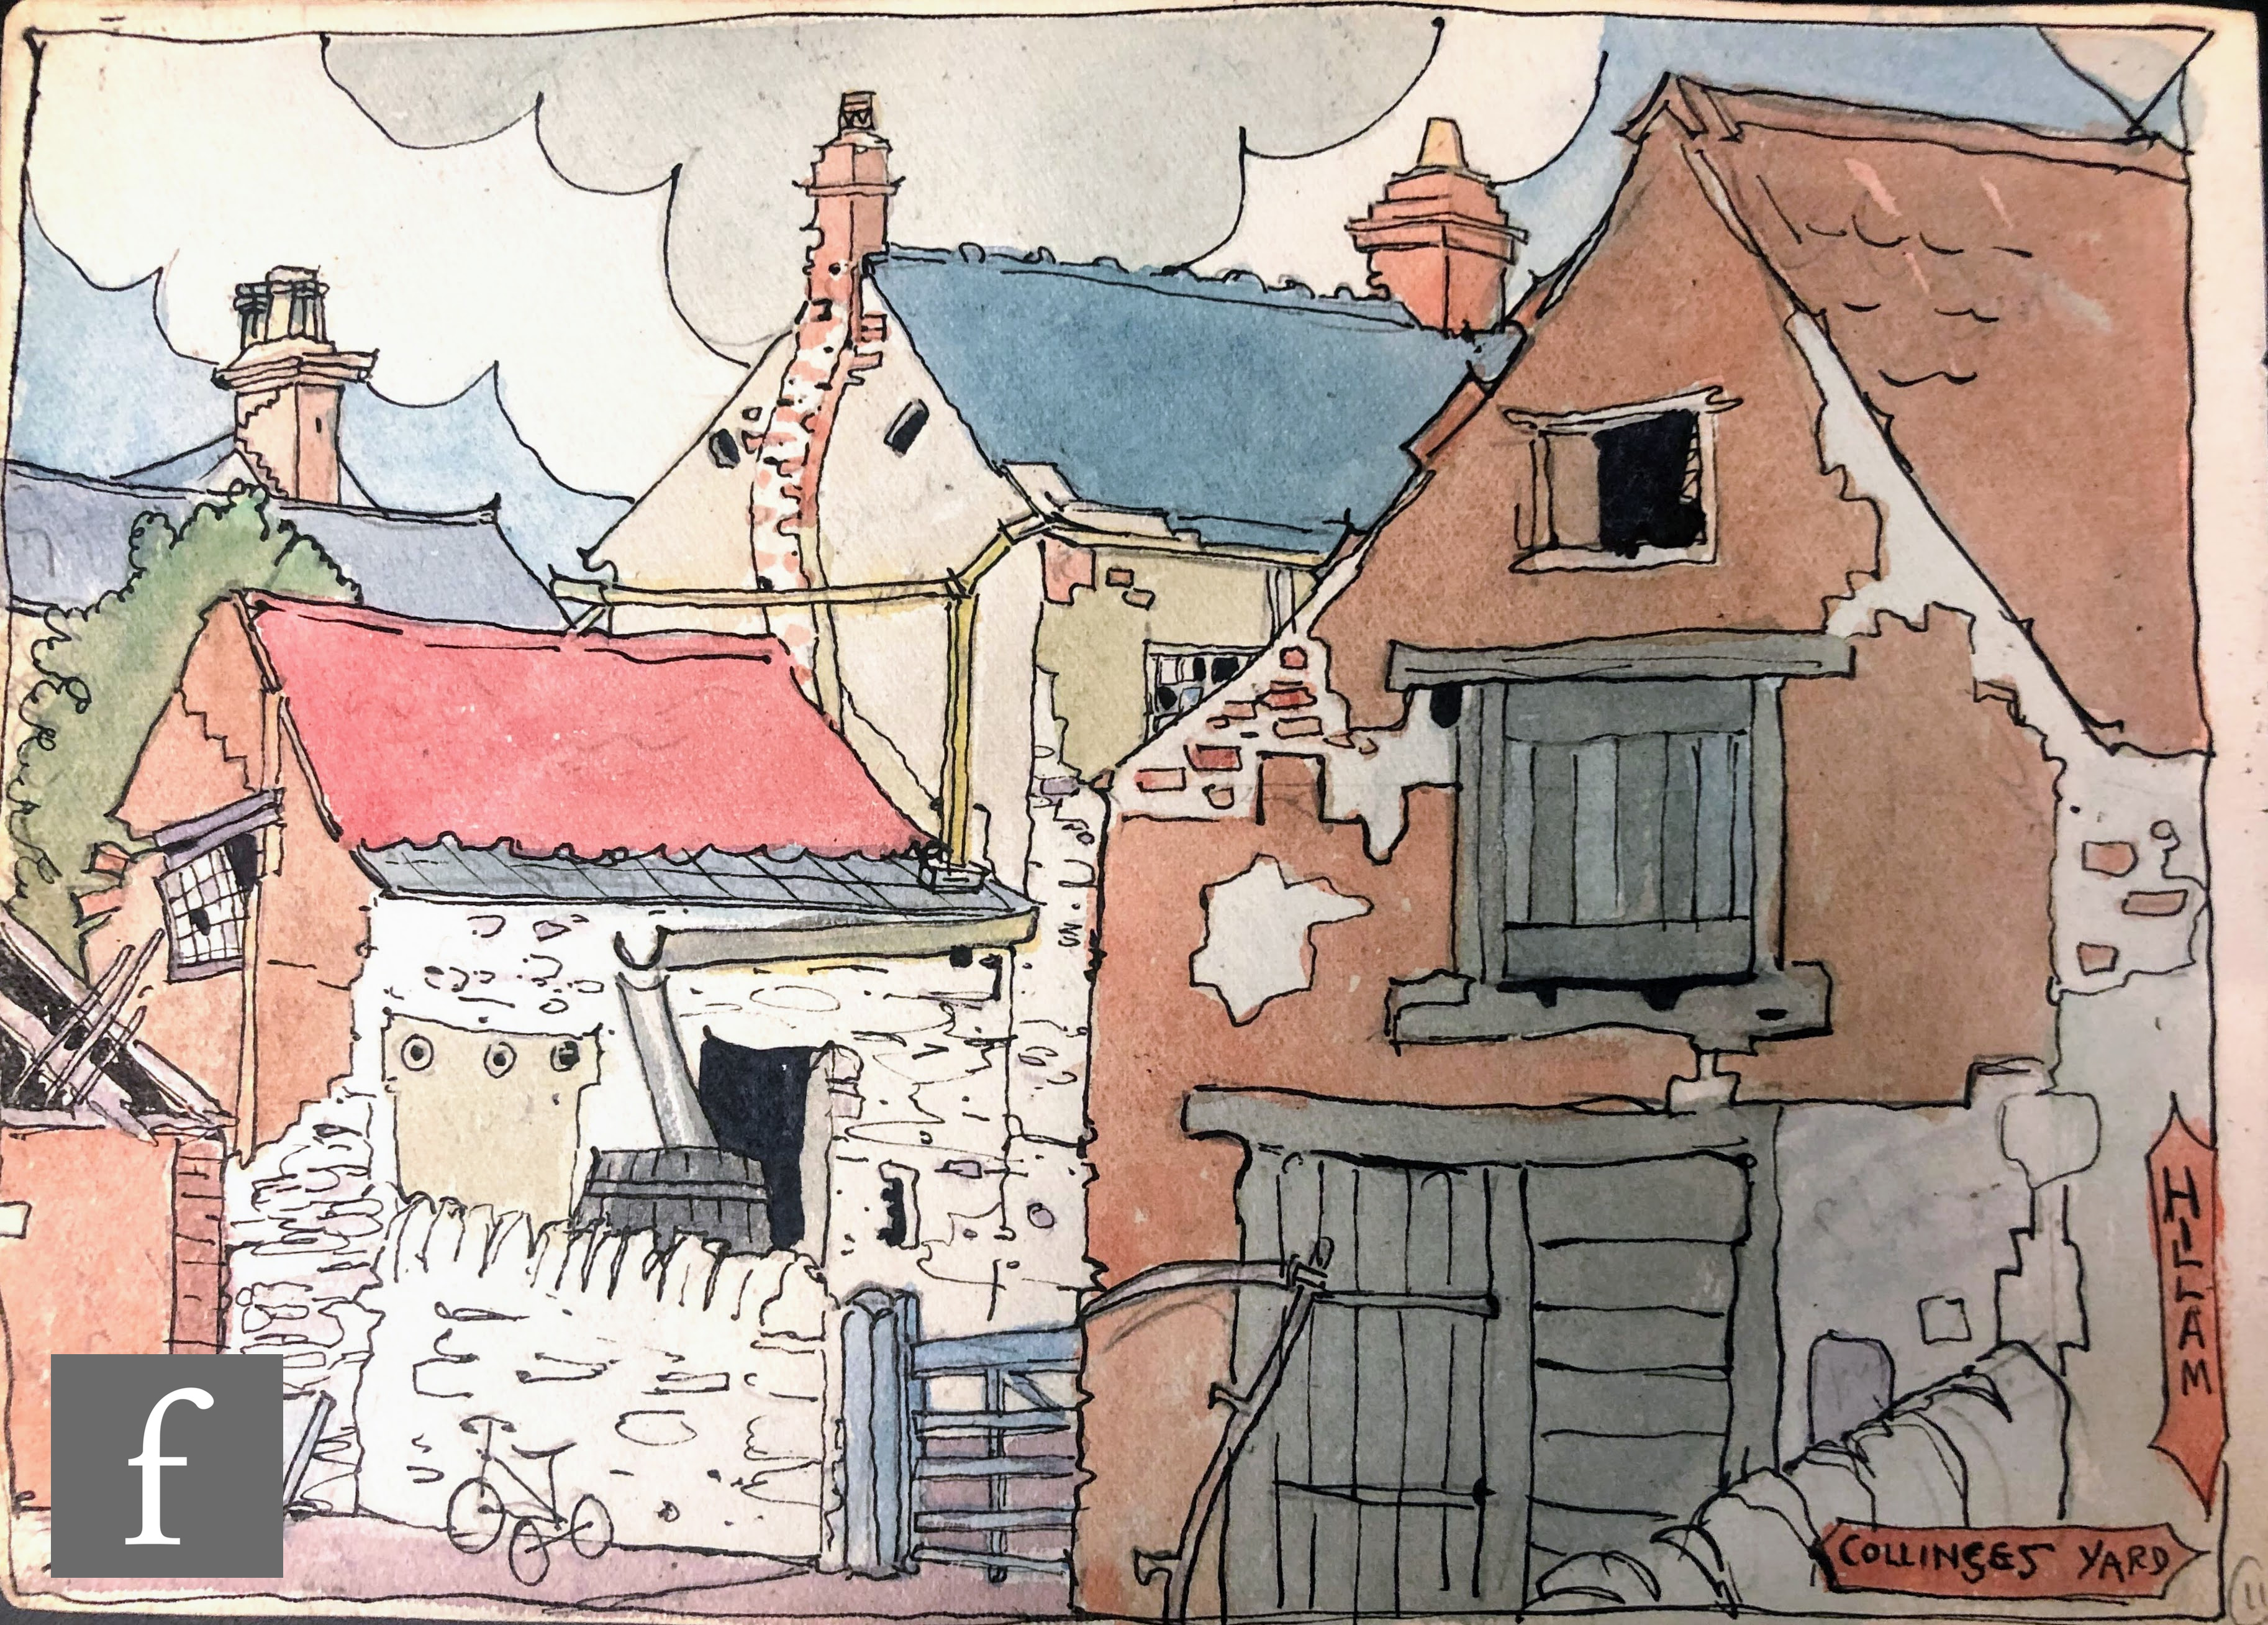 ALBERT WAINWRIGHT (1898-1943) - Hillam, Collinses Yard, a study of cottages, to the reverse sketches